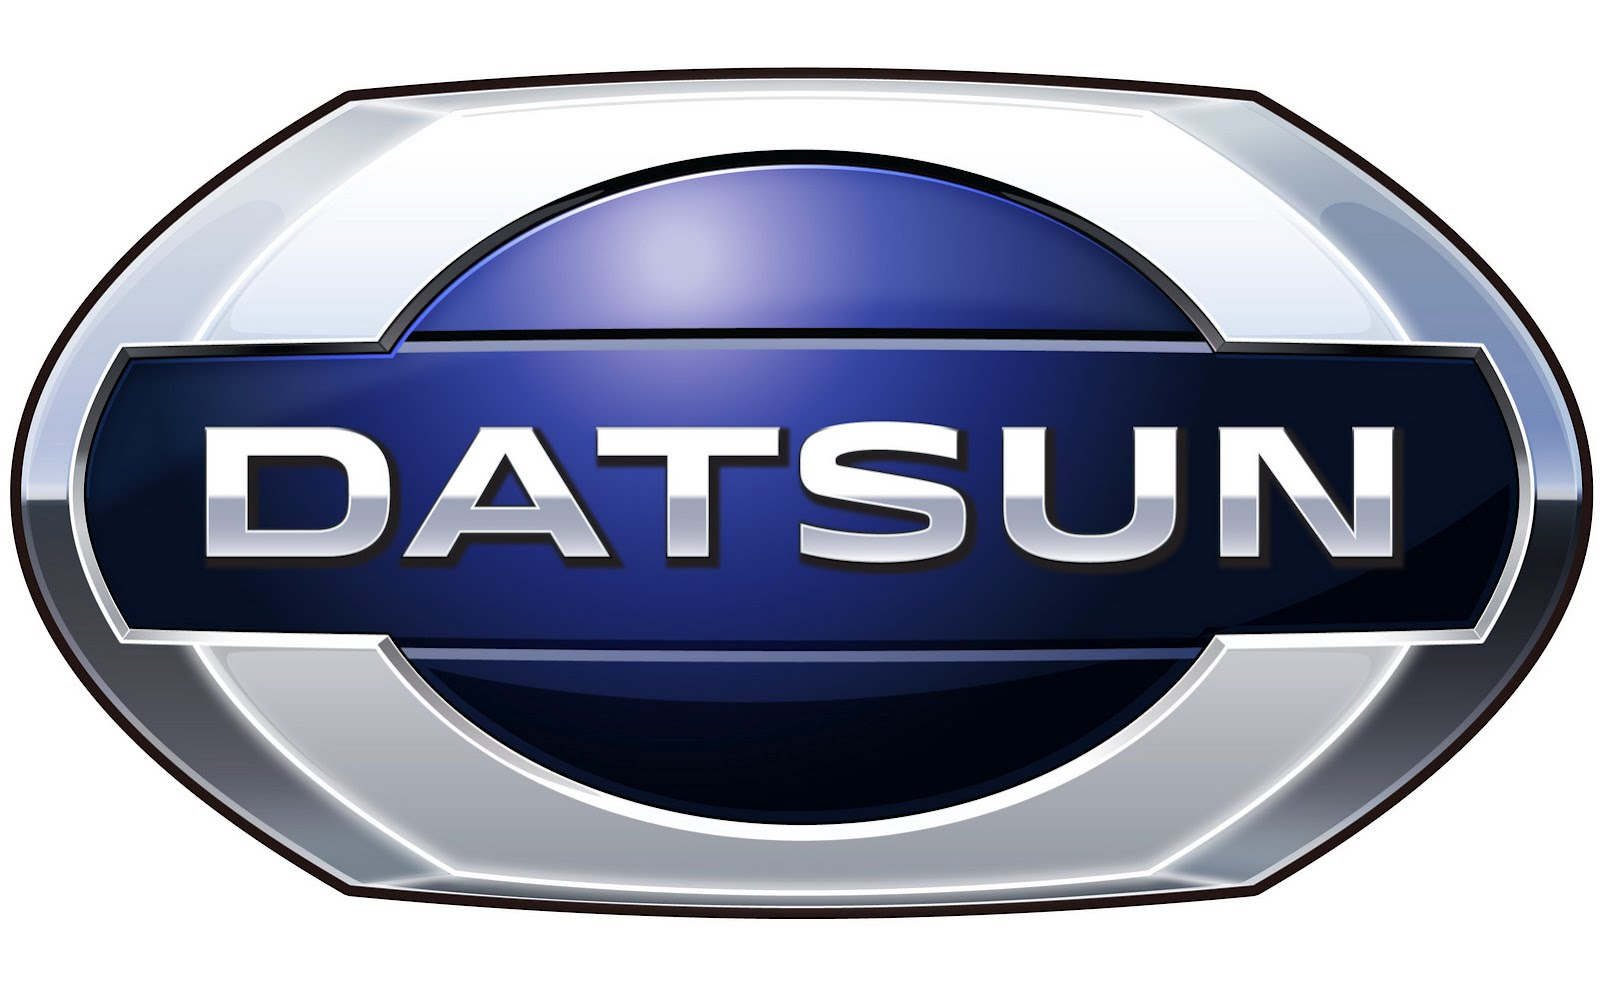 datsun-logo-revealed-by-nissan-brand-coming-in-2014-43525_1